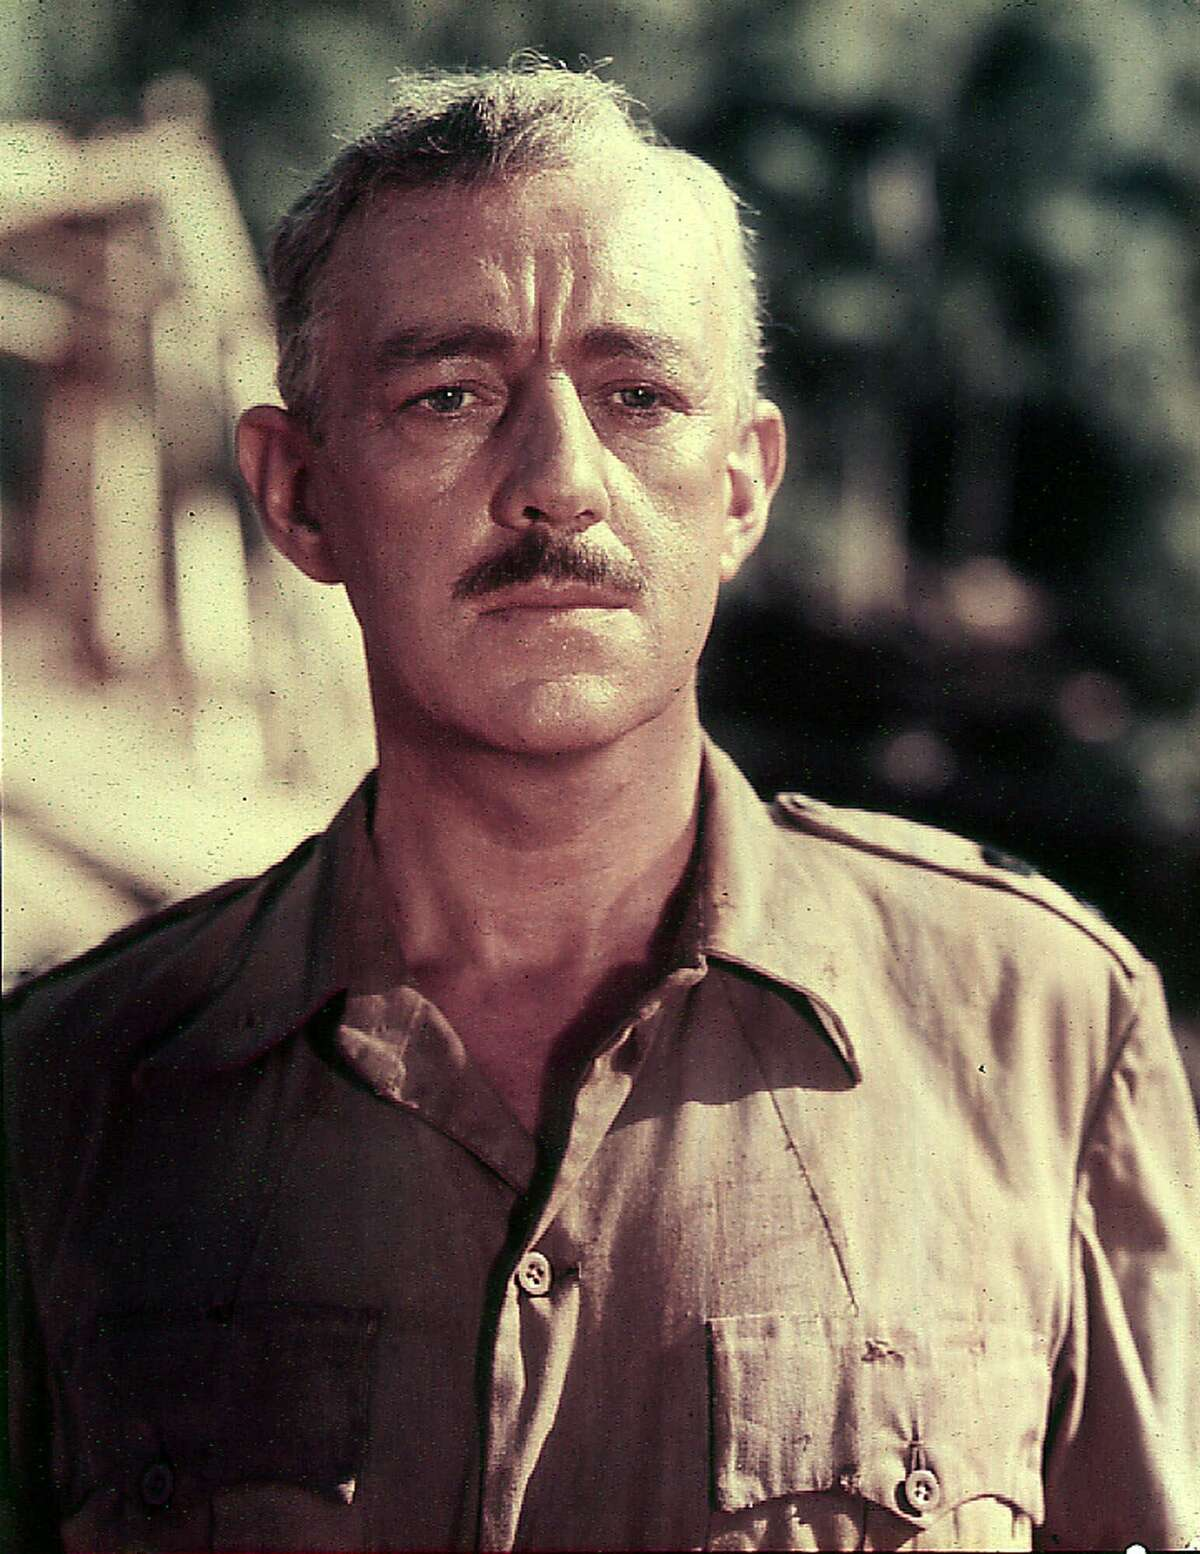 """FILE--This is a 1957 file photo of British actor, Sir Alec Guinness in British uniform during the filming of """"The Bridge on the River Kwai."""" Guinness, whose roles in a 66-year career ranged from Hamlet to Obi-Wan Kenobi in """"Star Wars,"""" has died at age 86, a hospital spokesman said Monday, August 7, 2000. Guinness became ill at his home near Petersfield, southern England and was taken by ambulance to the King Edward VII Hospital where he died Saturday, August 5, 2000, said hospital spokeswoman Jenny Masding. The cause of death was not released. (AP Photo)"""